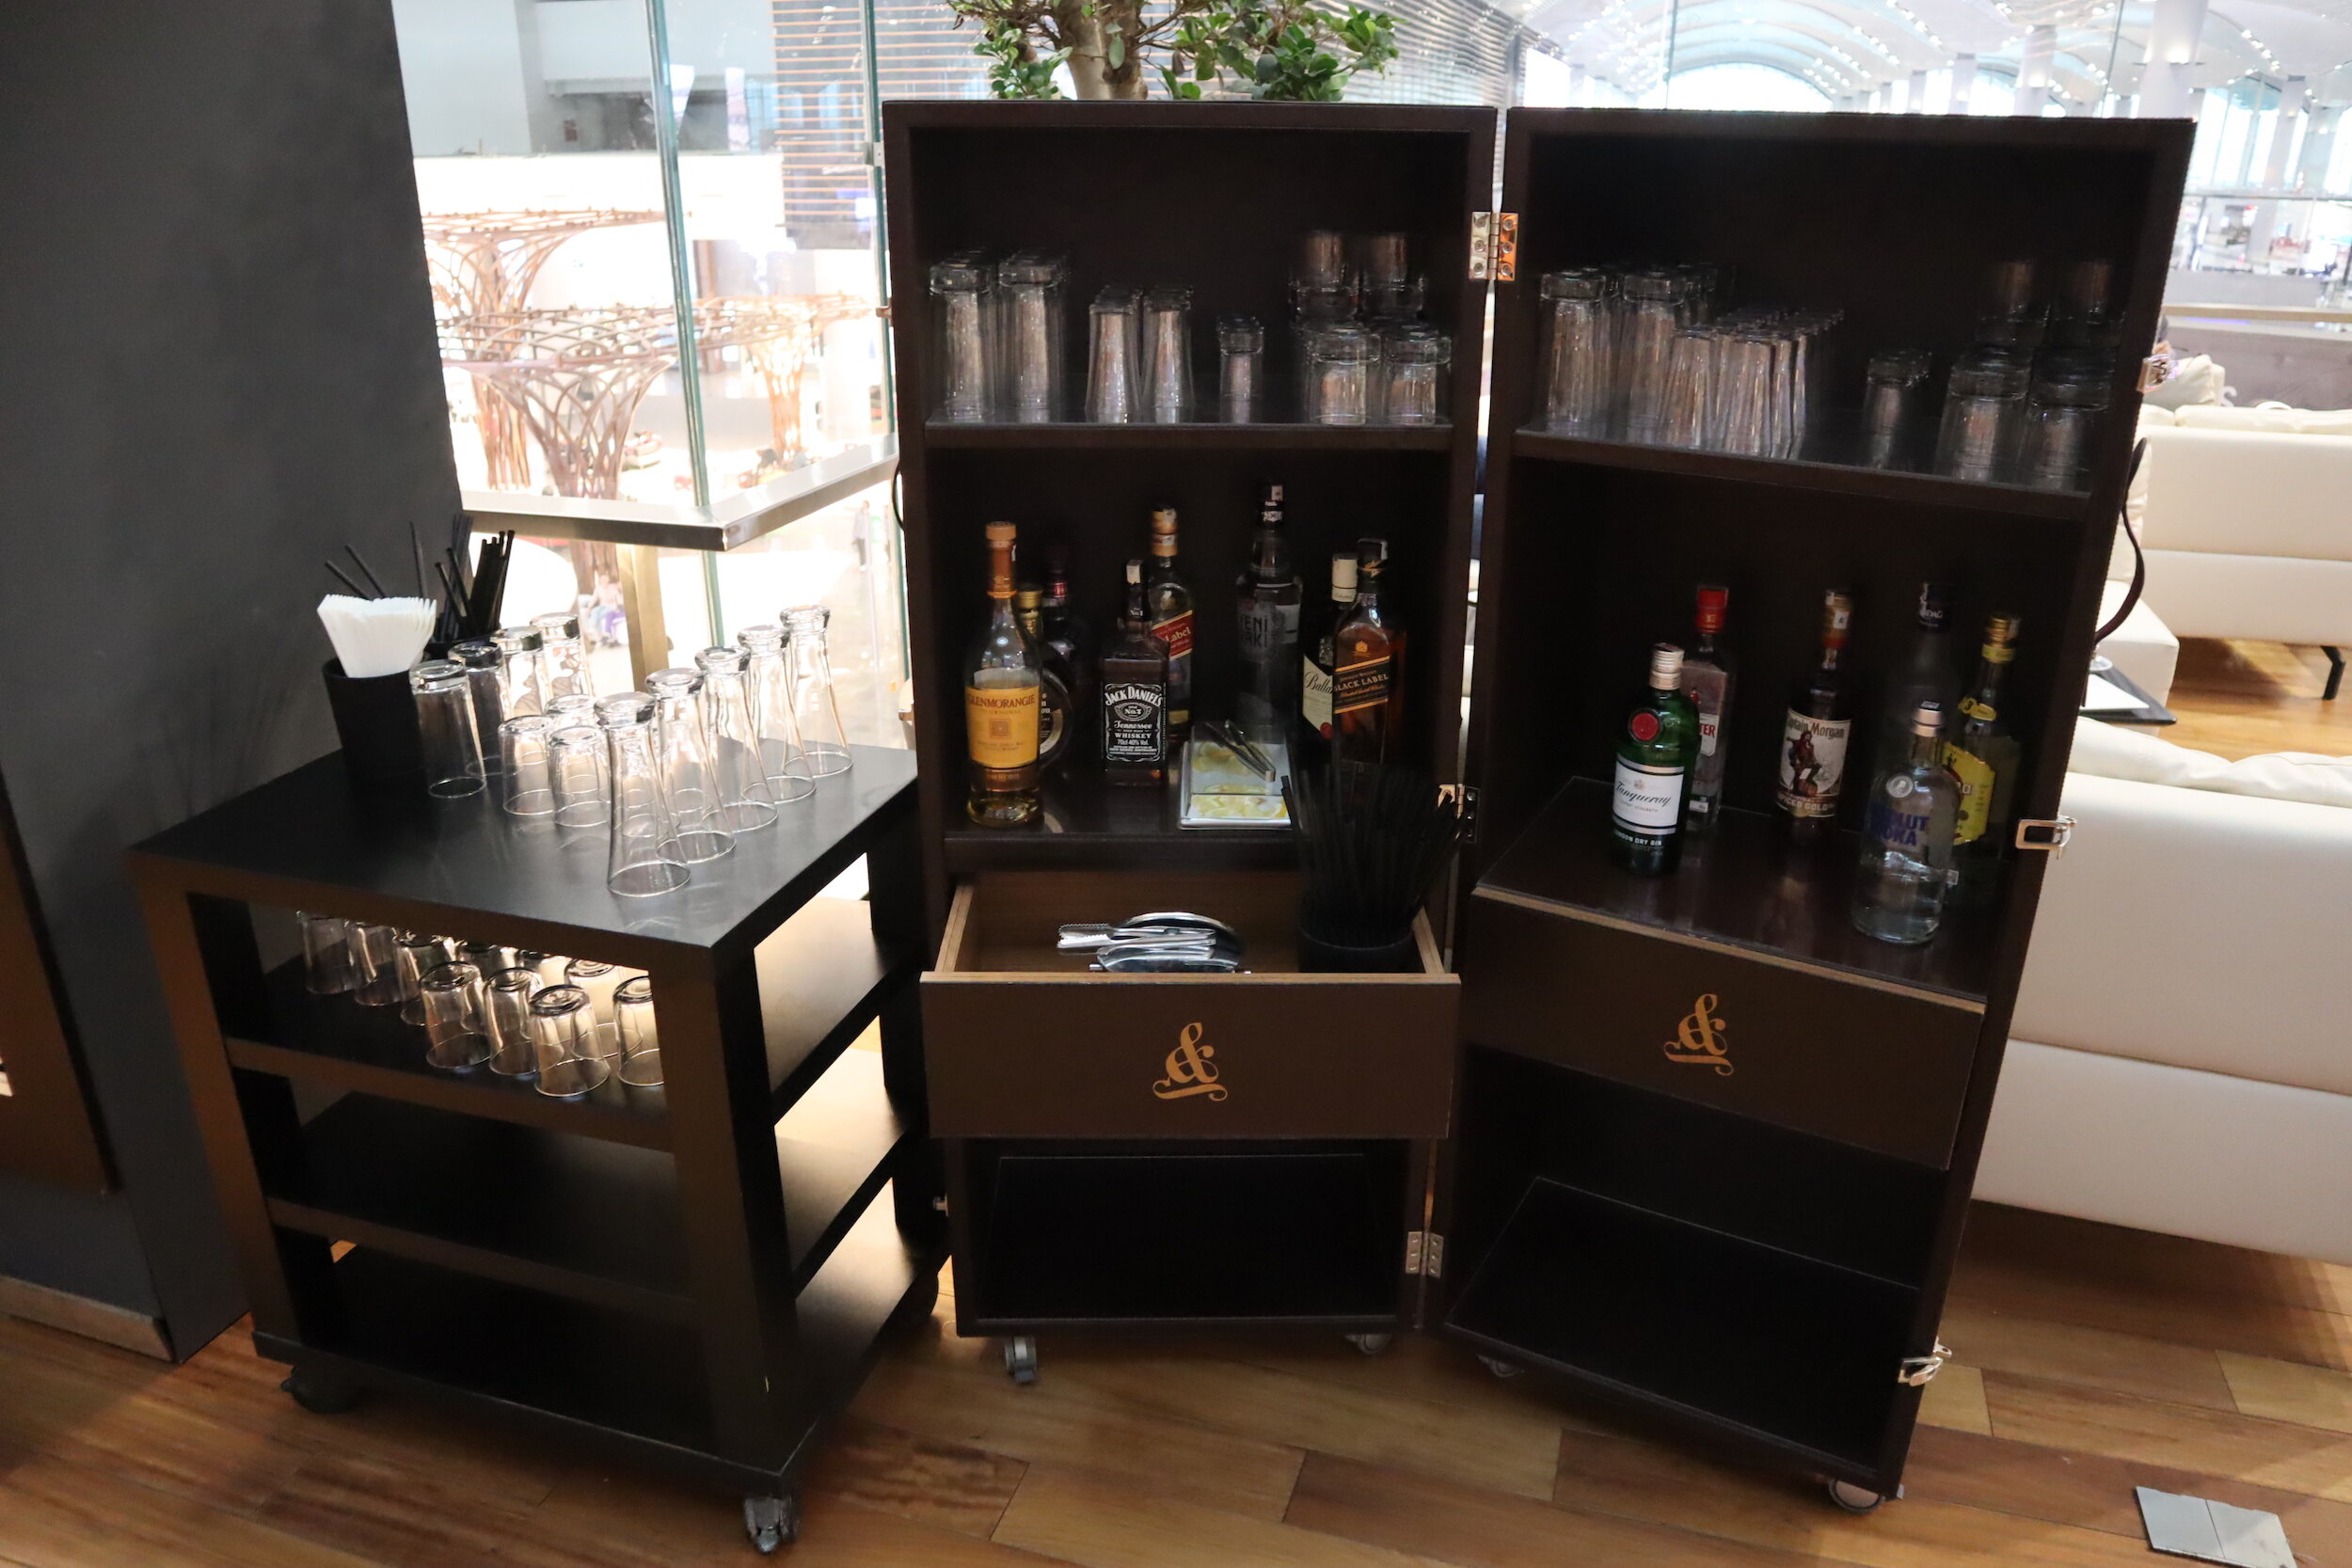 Turkish Airlines Business Lounge Istanbul – Self-serve liquor cart